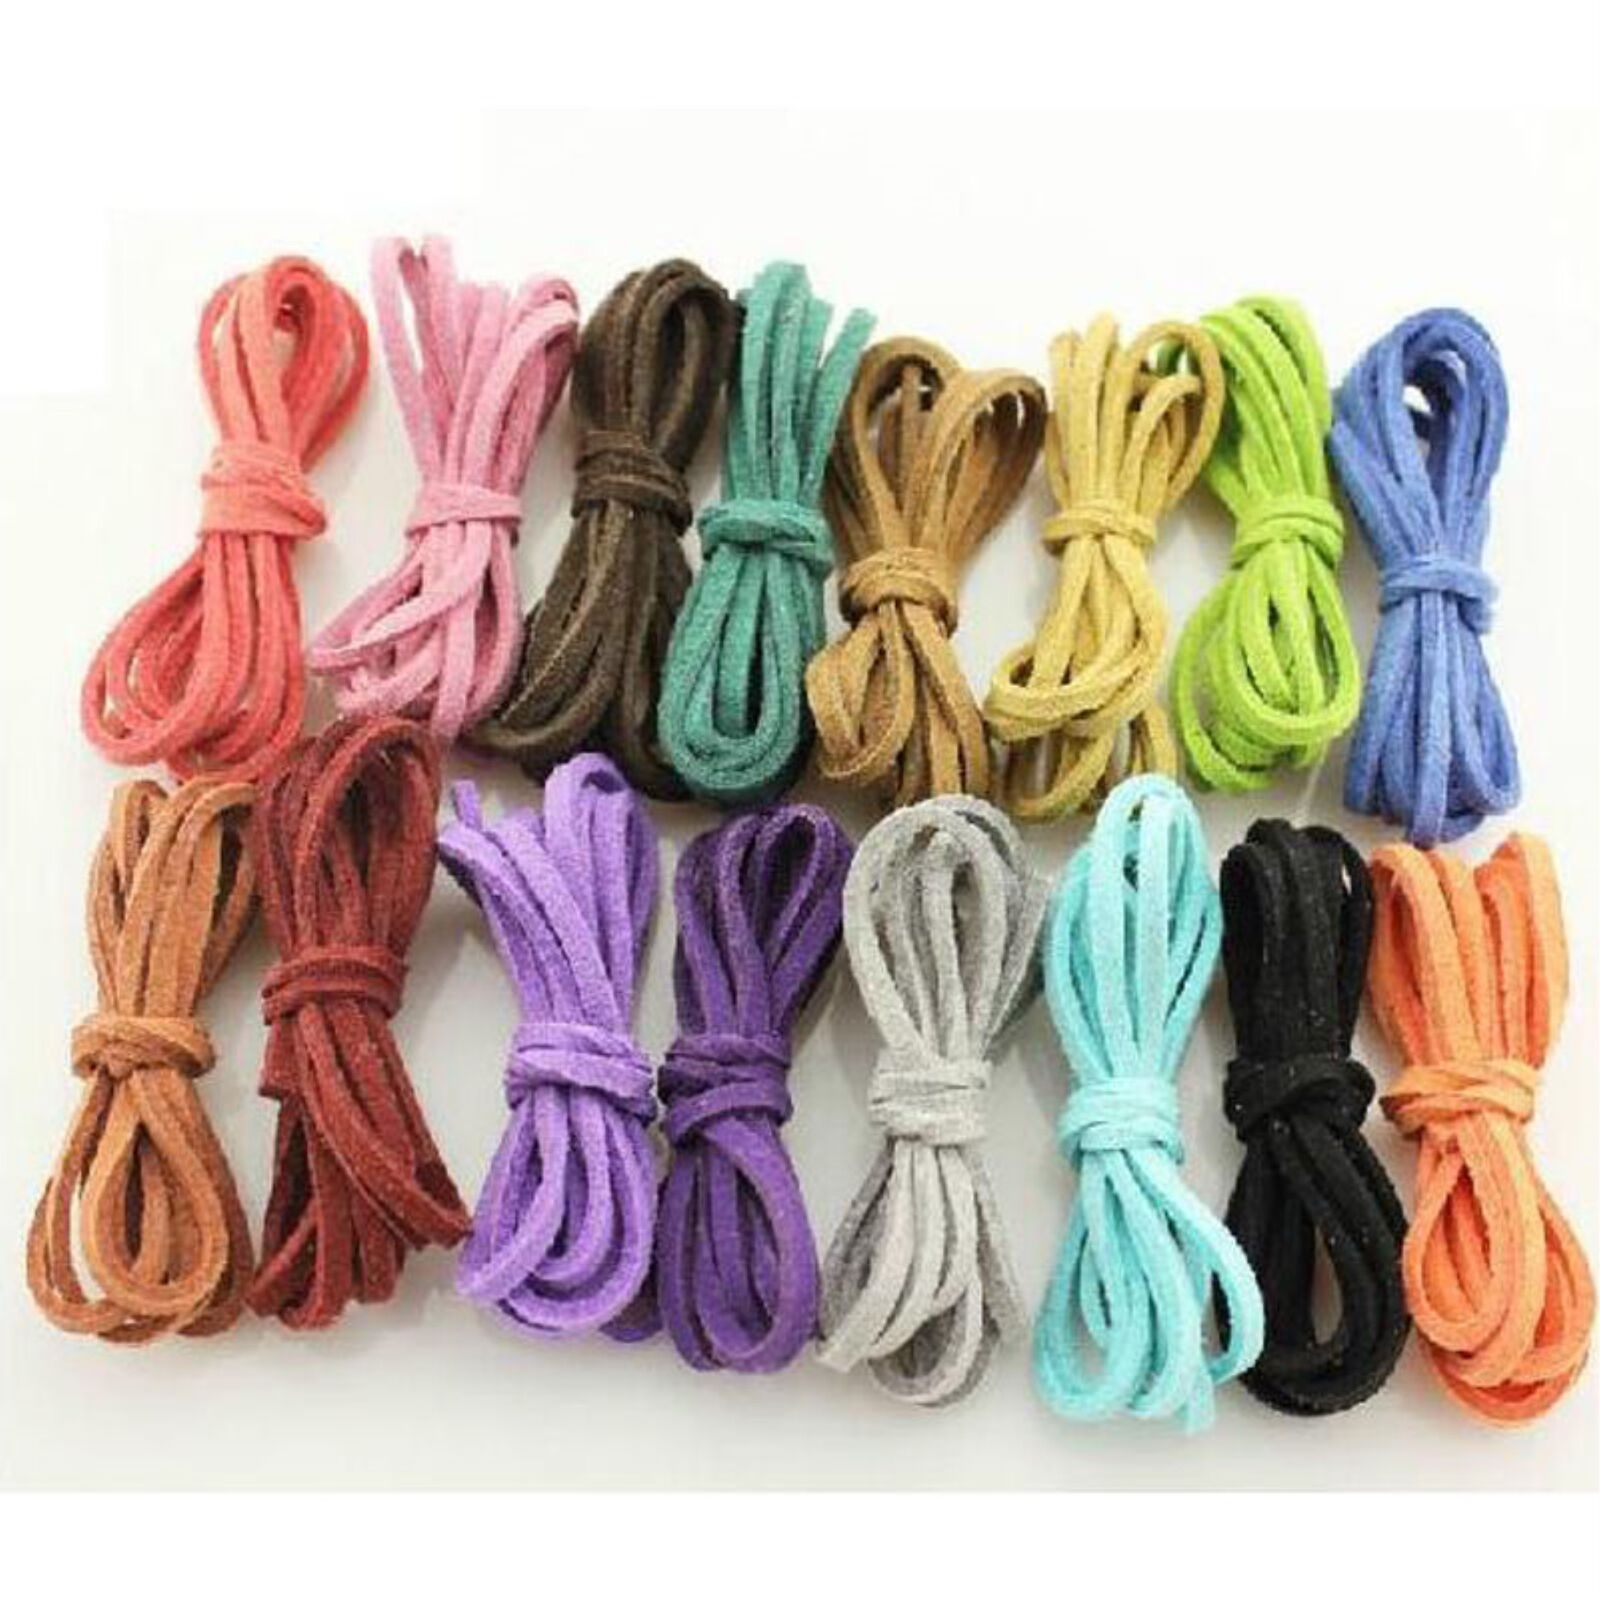 Wholesale 10yd 3mm Suede Leather String Jewelry Making Bracelet DIY Thread Cord